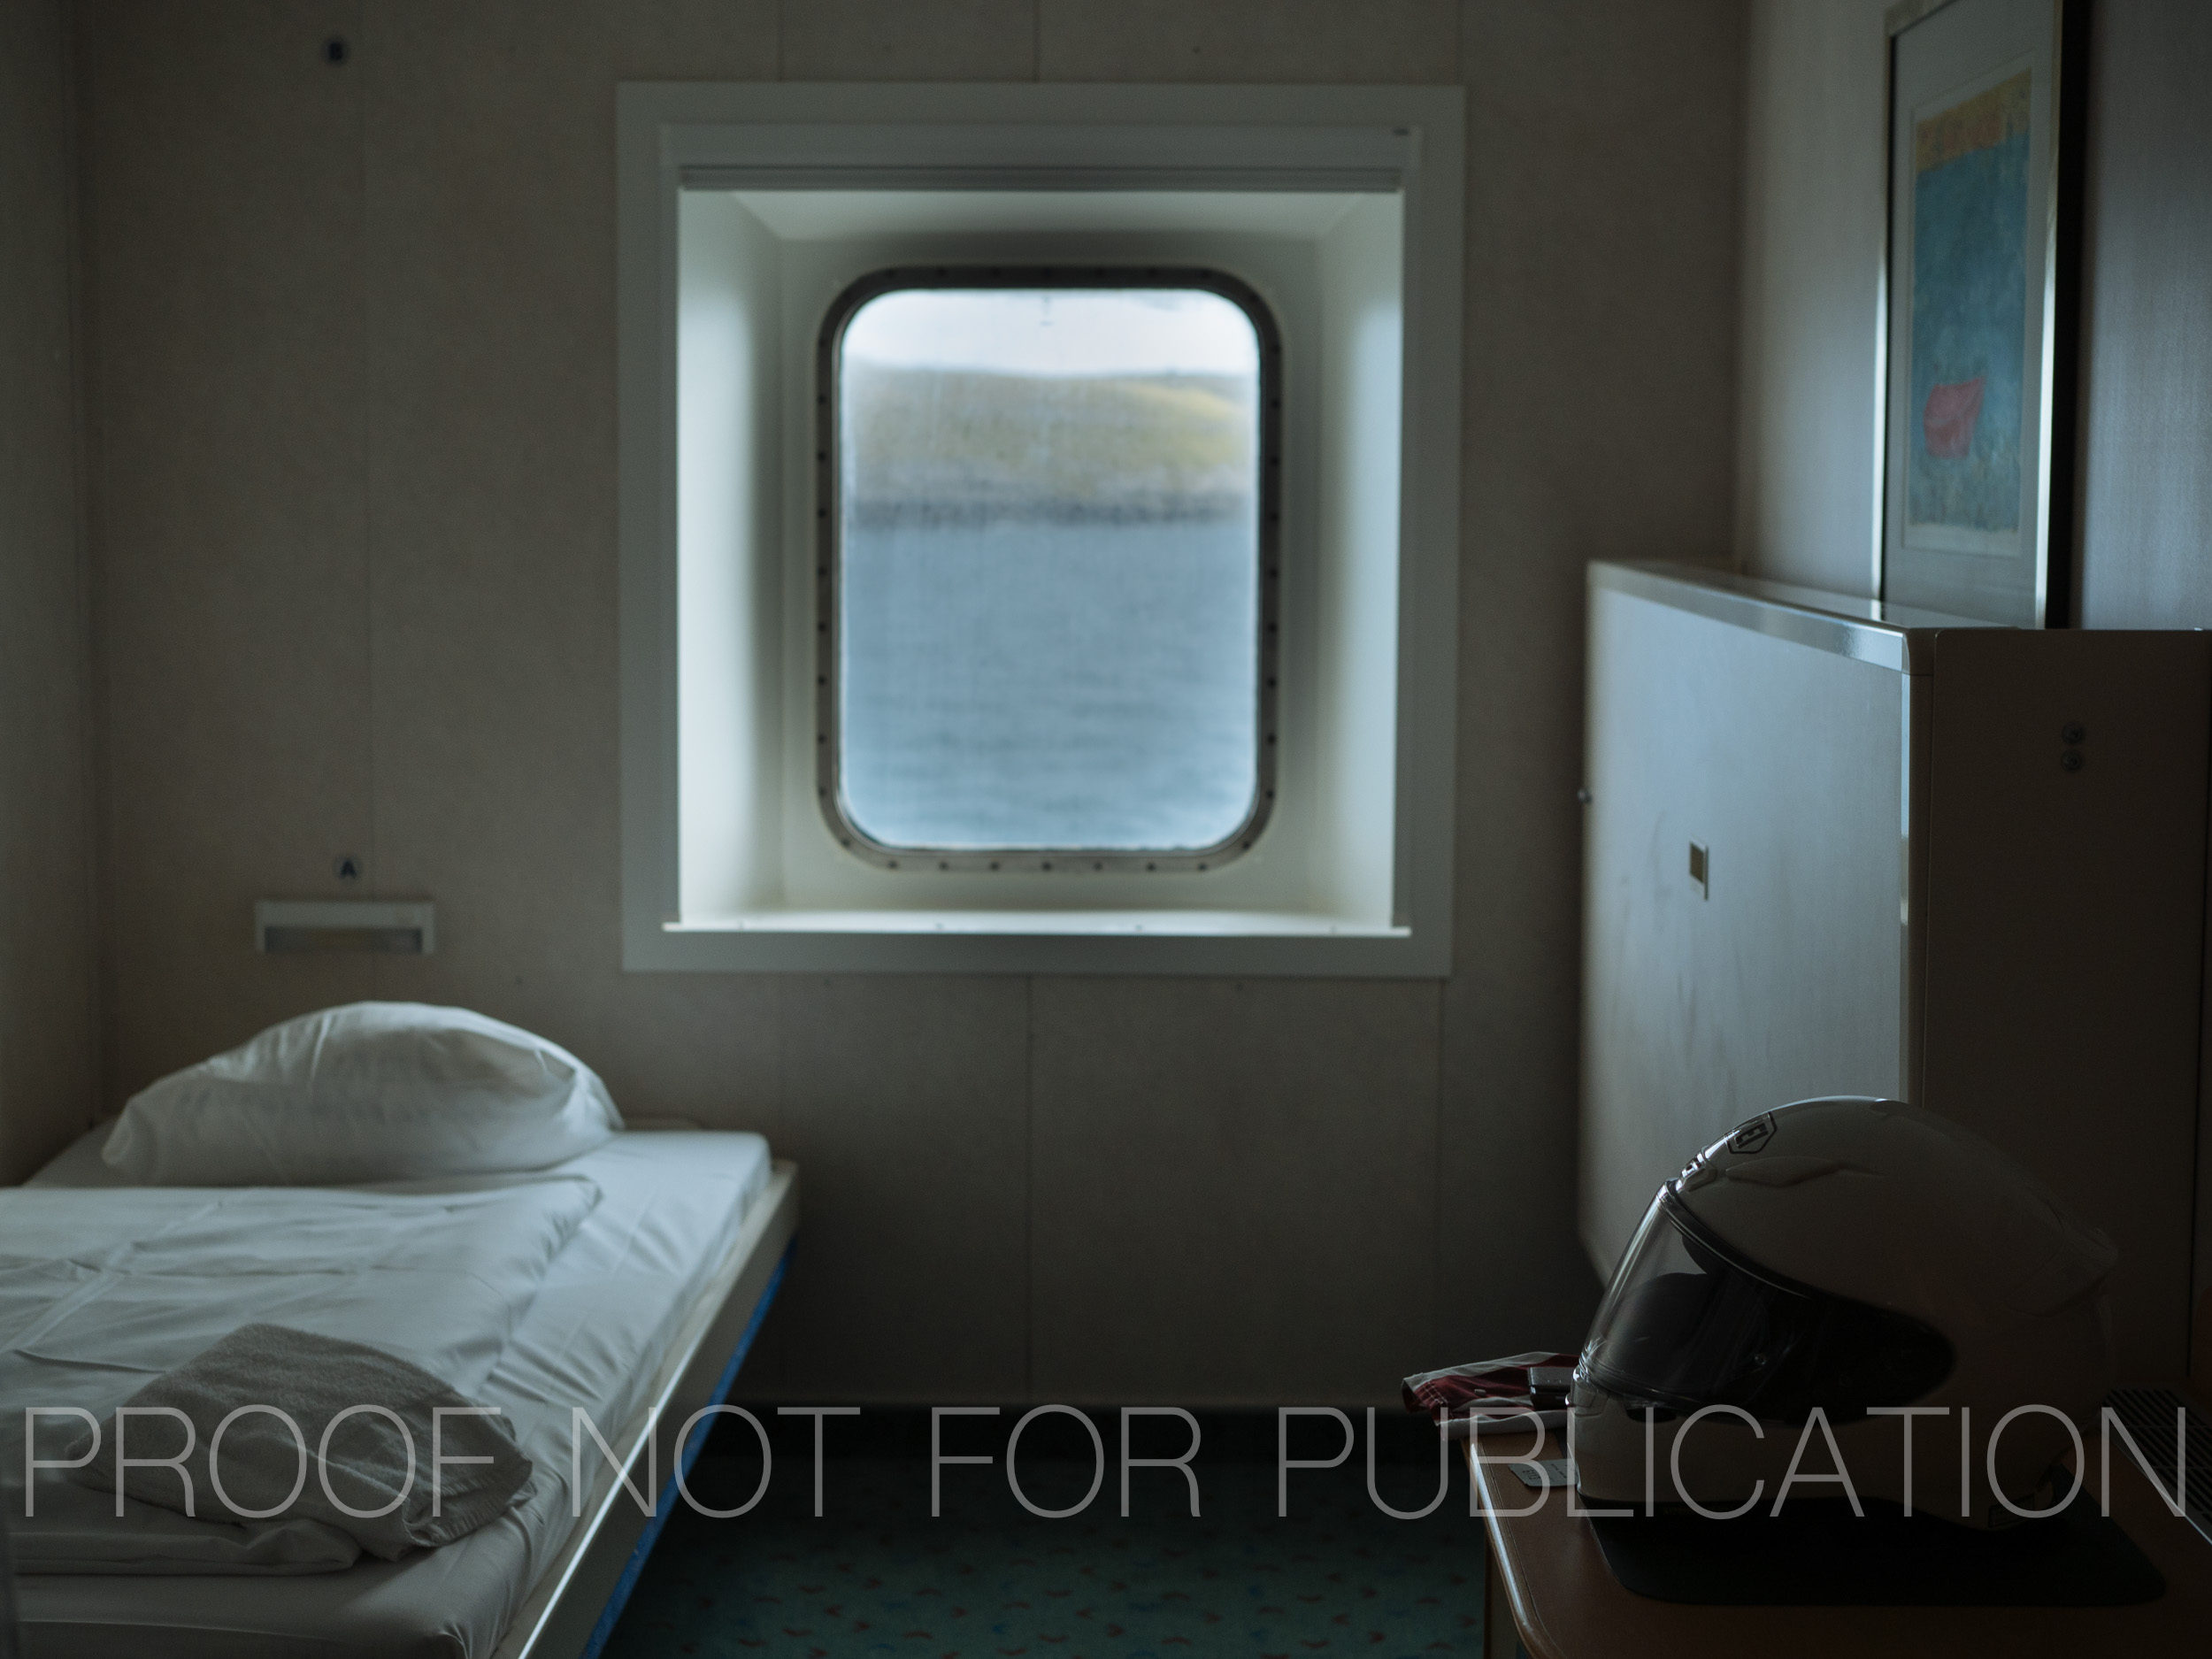 Four berth cabin aboard the MS Norröna